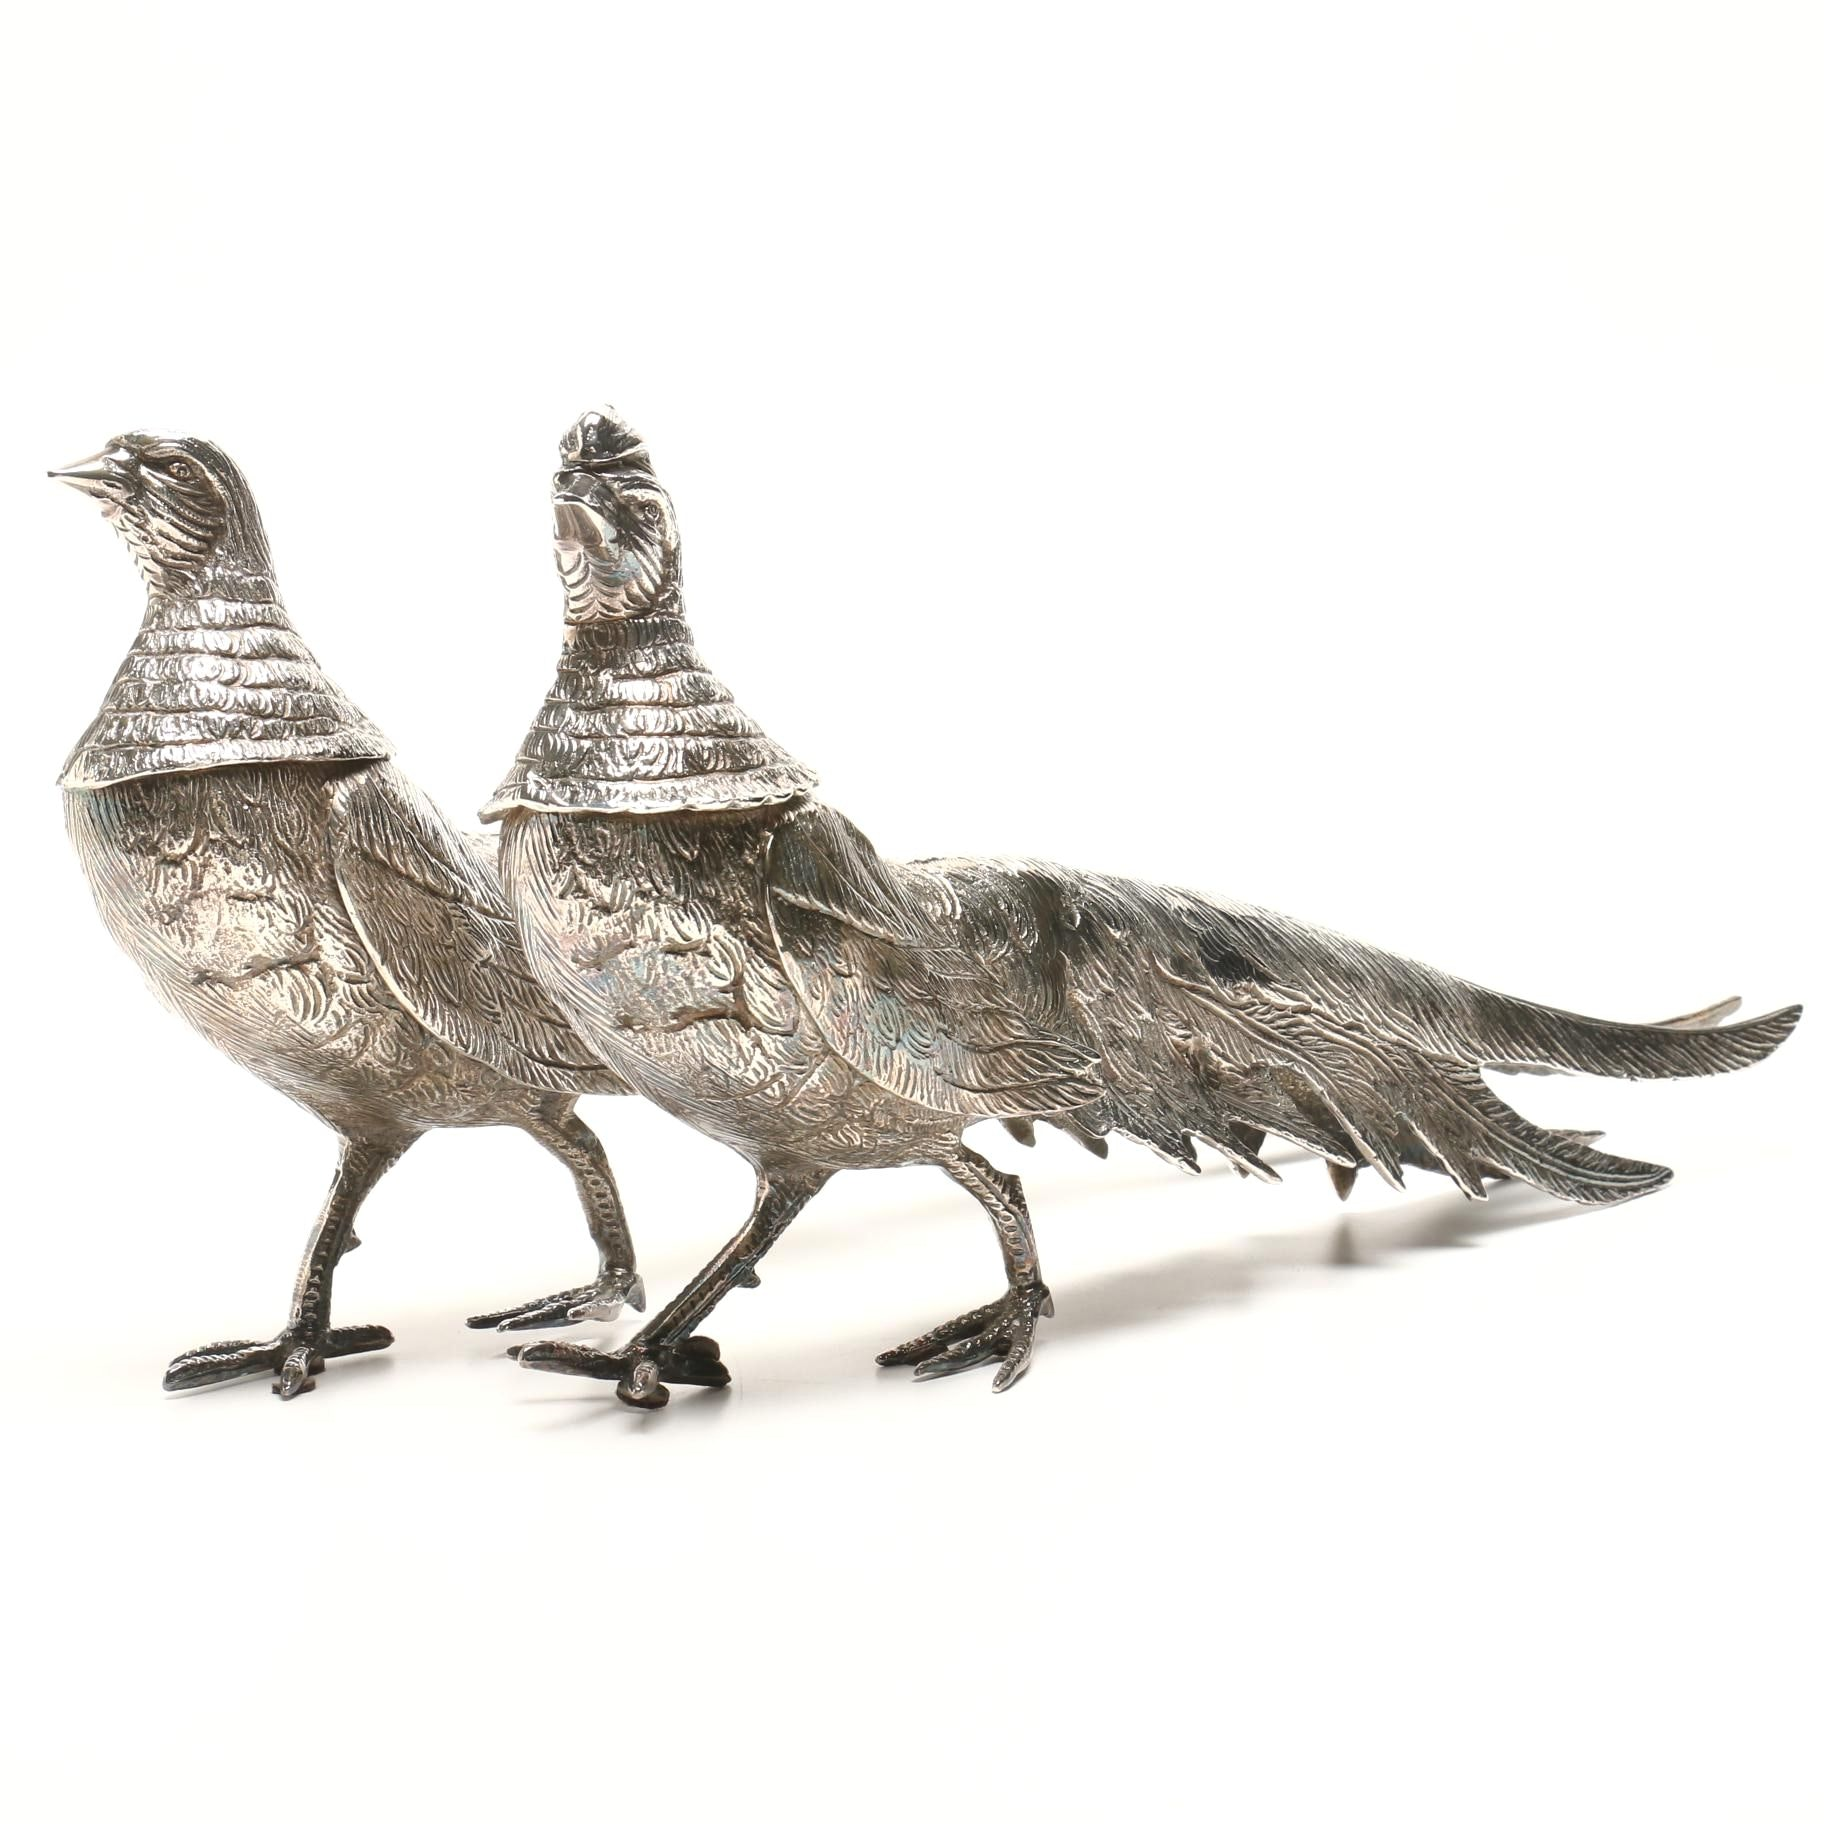 Plumed French Pheasant Table Garniture Figurines